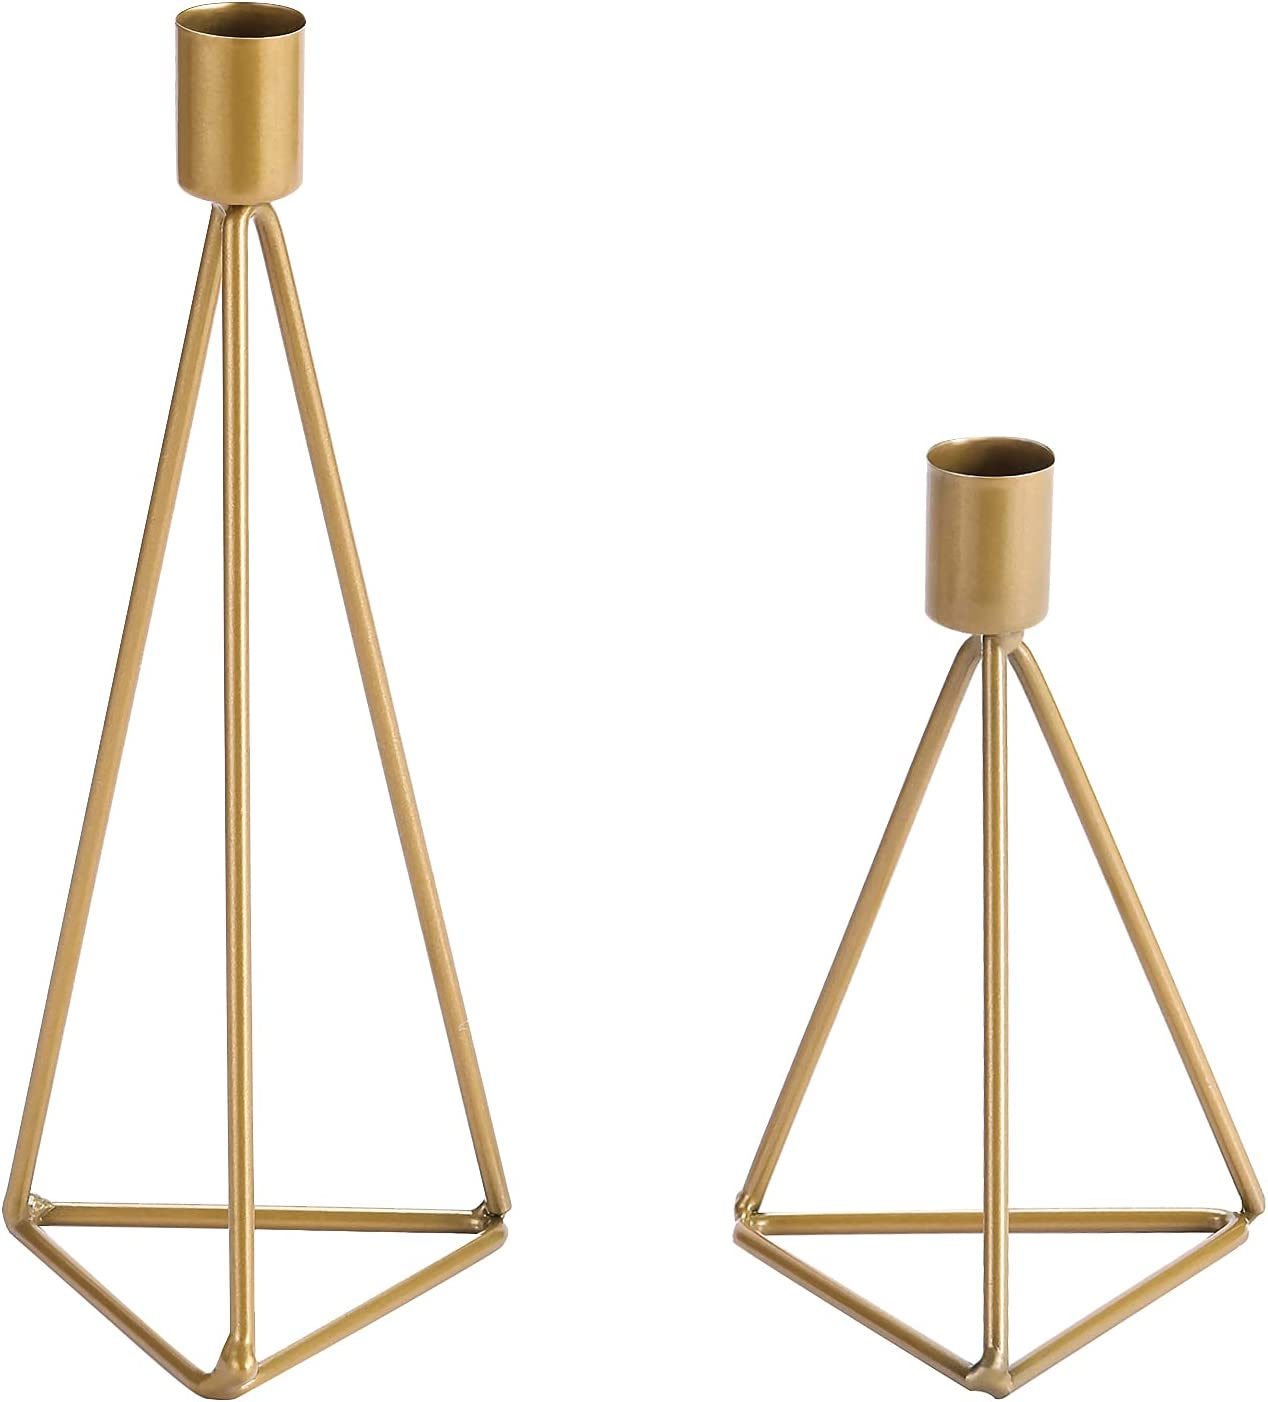 HUANGXIN Gold Candle Holder Triangle Candlestick Set of 2 for Taper Candles Home Decorative Candles Stand for Wedding Dinning Party Birthday